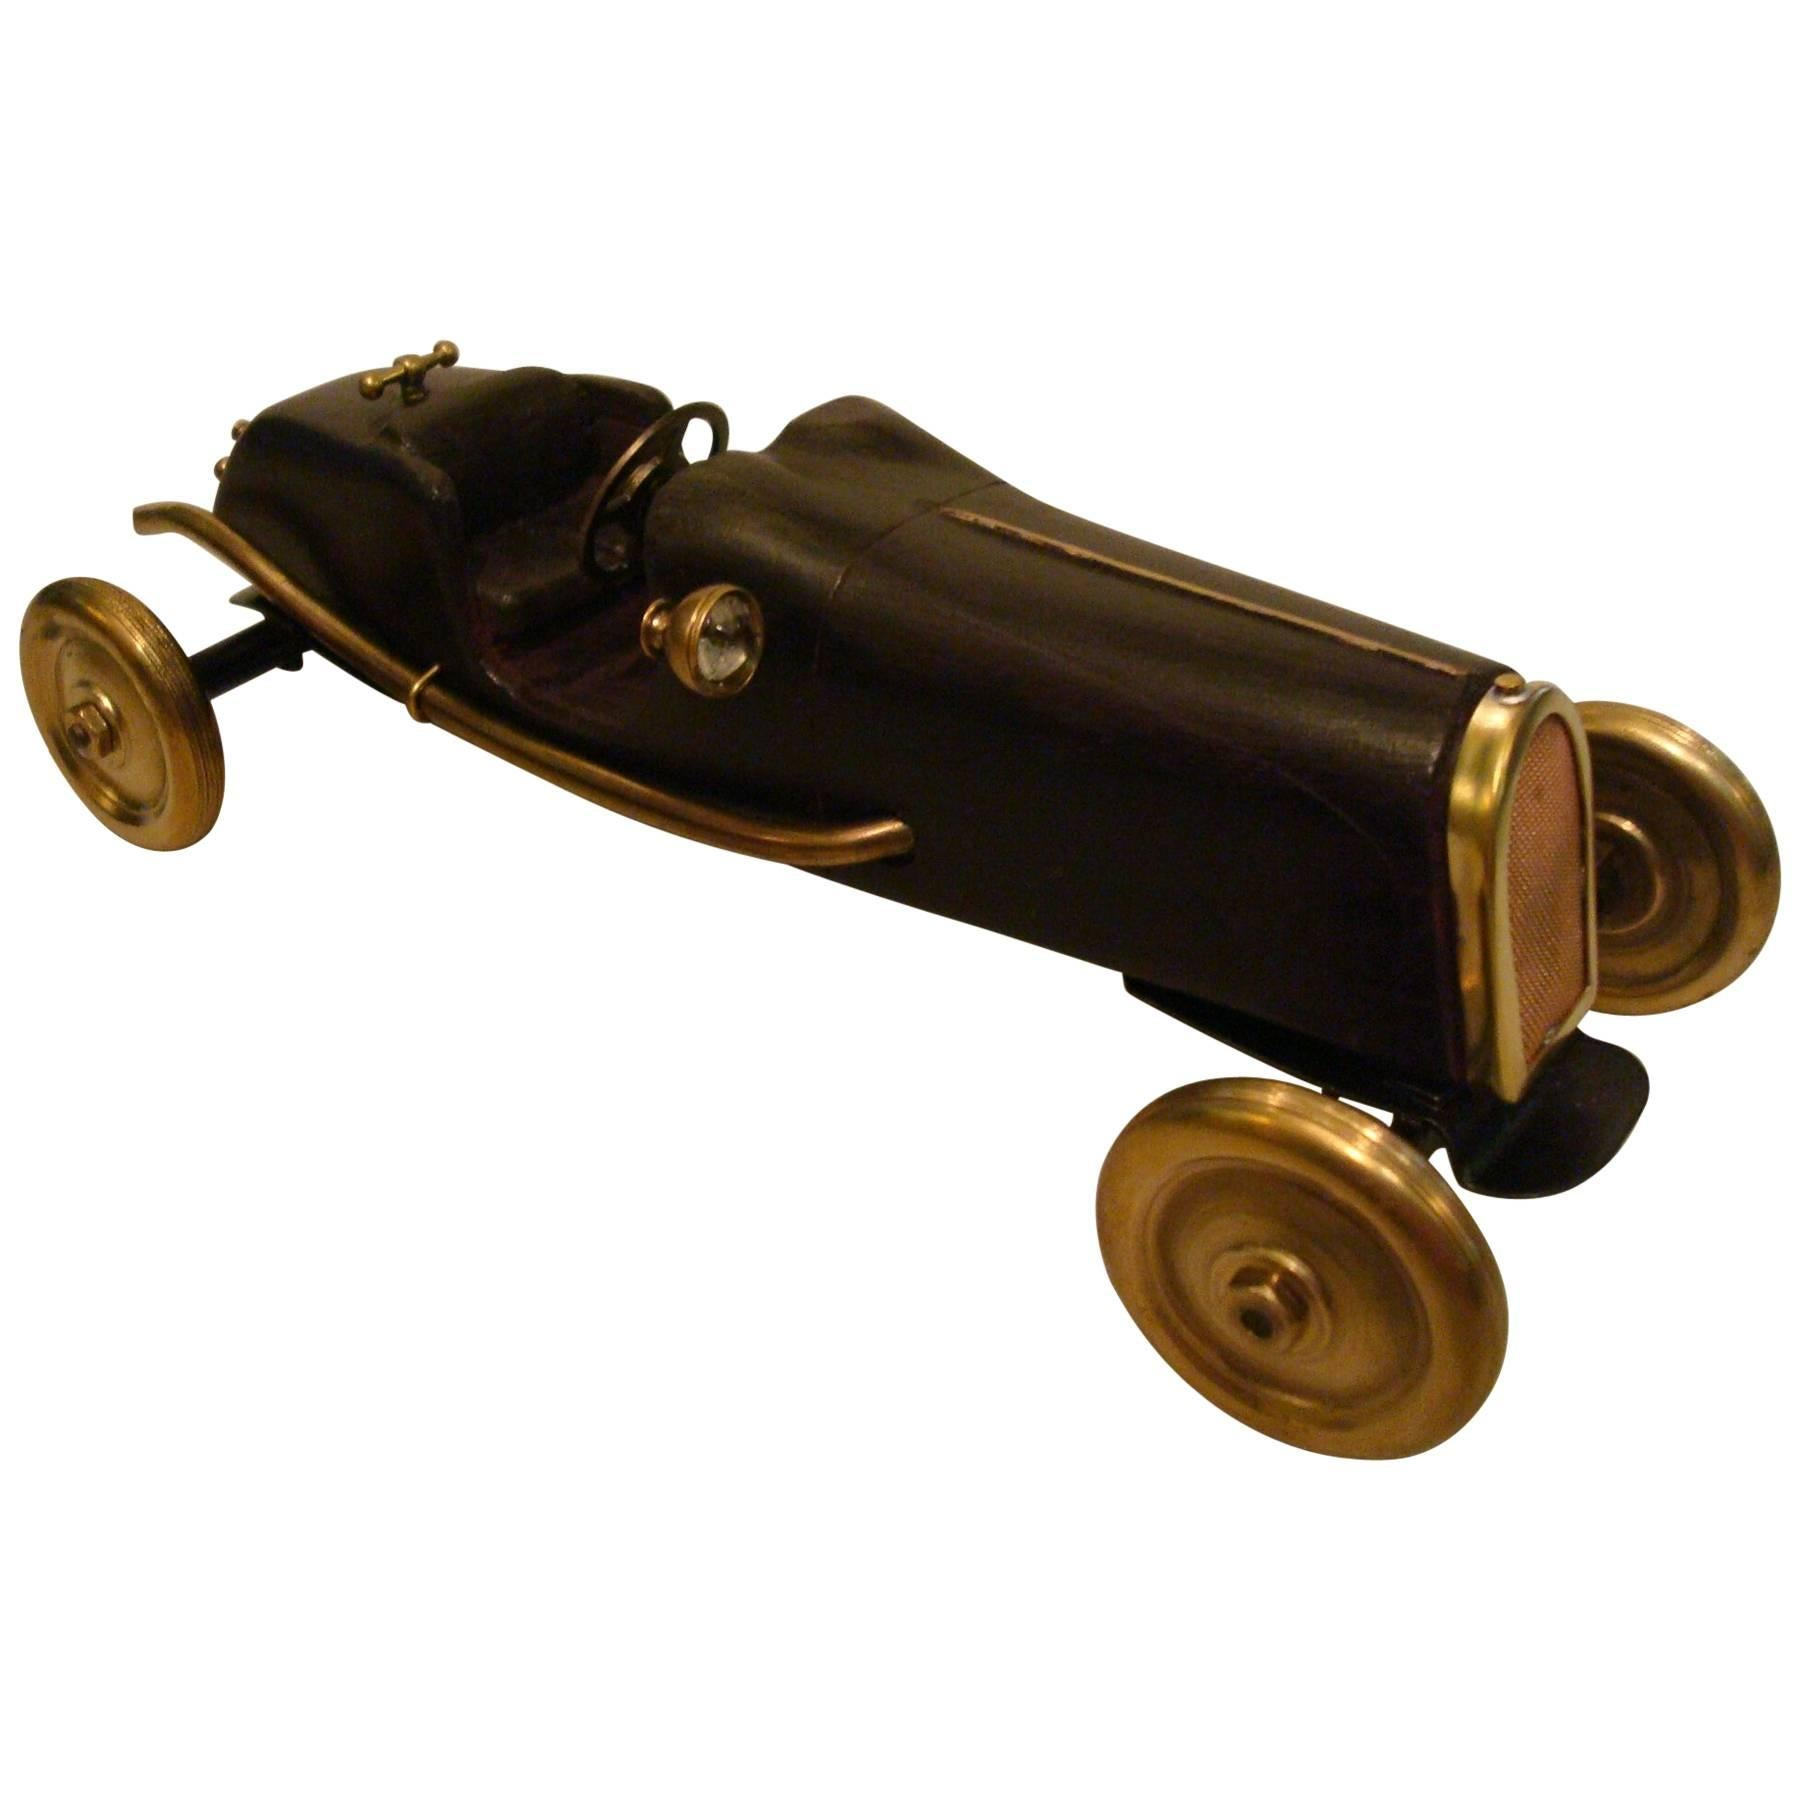 Early Racing Car Model, Indianapolis Type, Brass and Wood, Automobilia